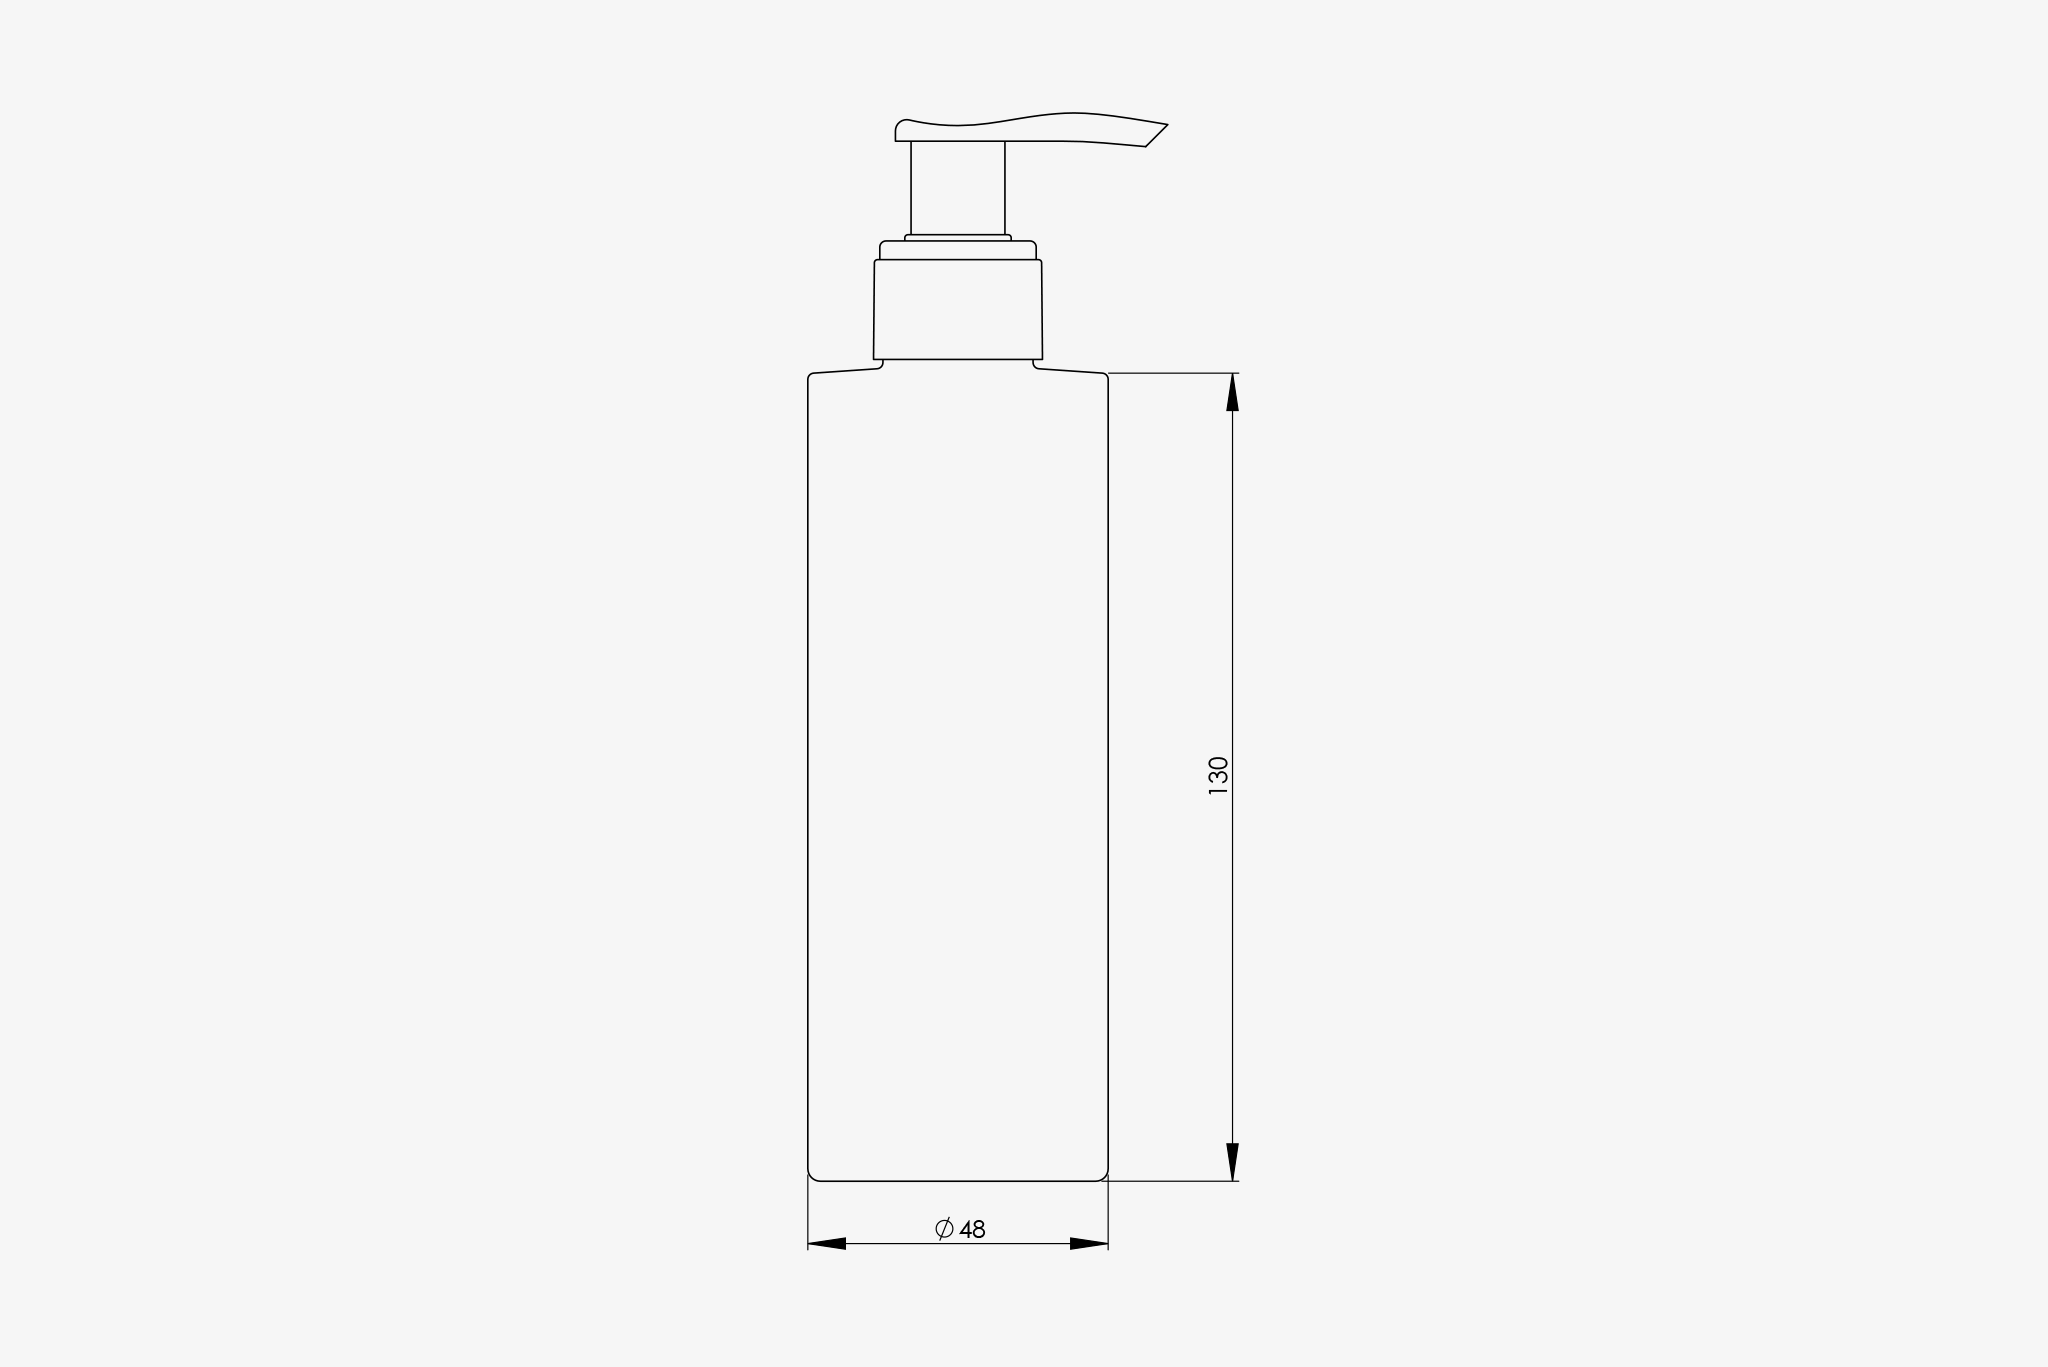 standard-bottle-200ml-dimensions